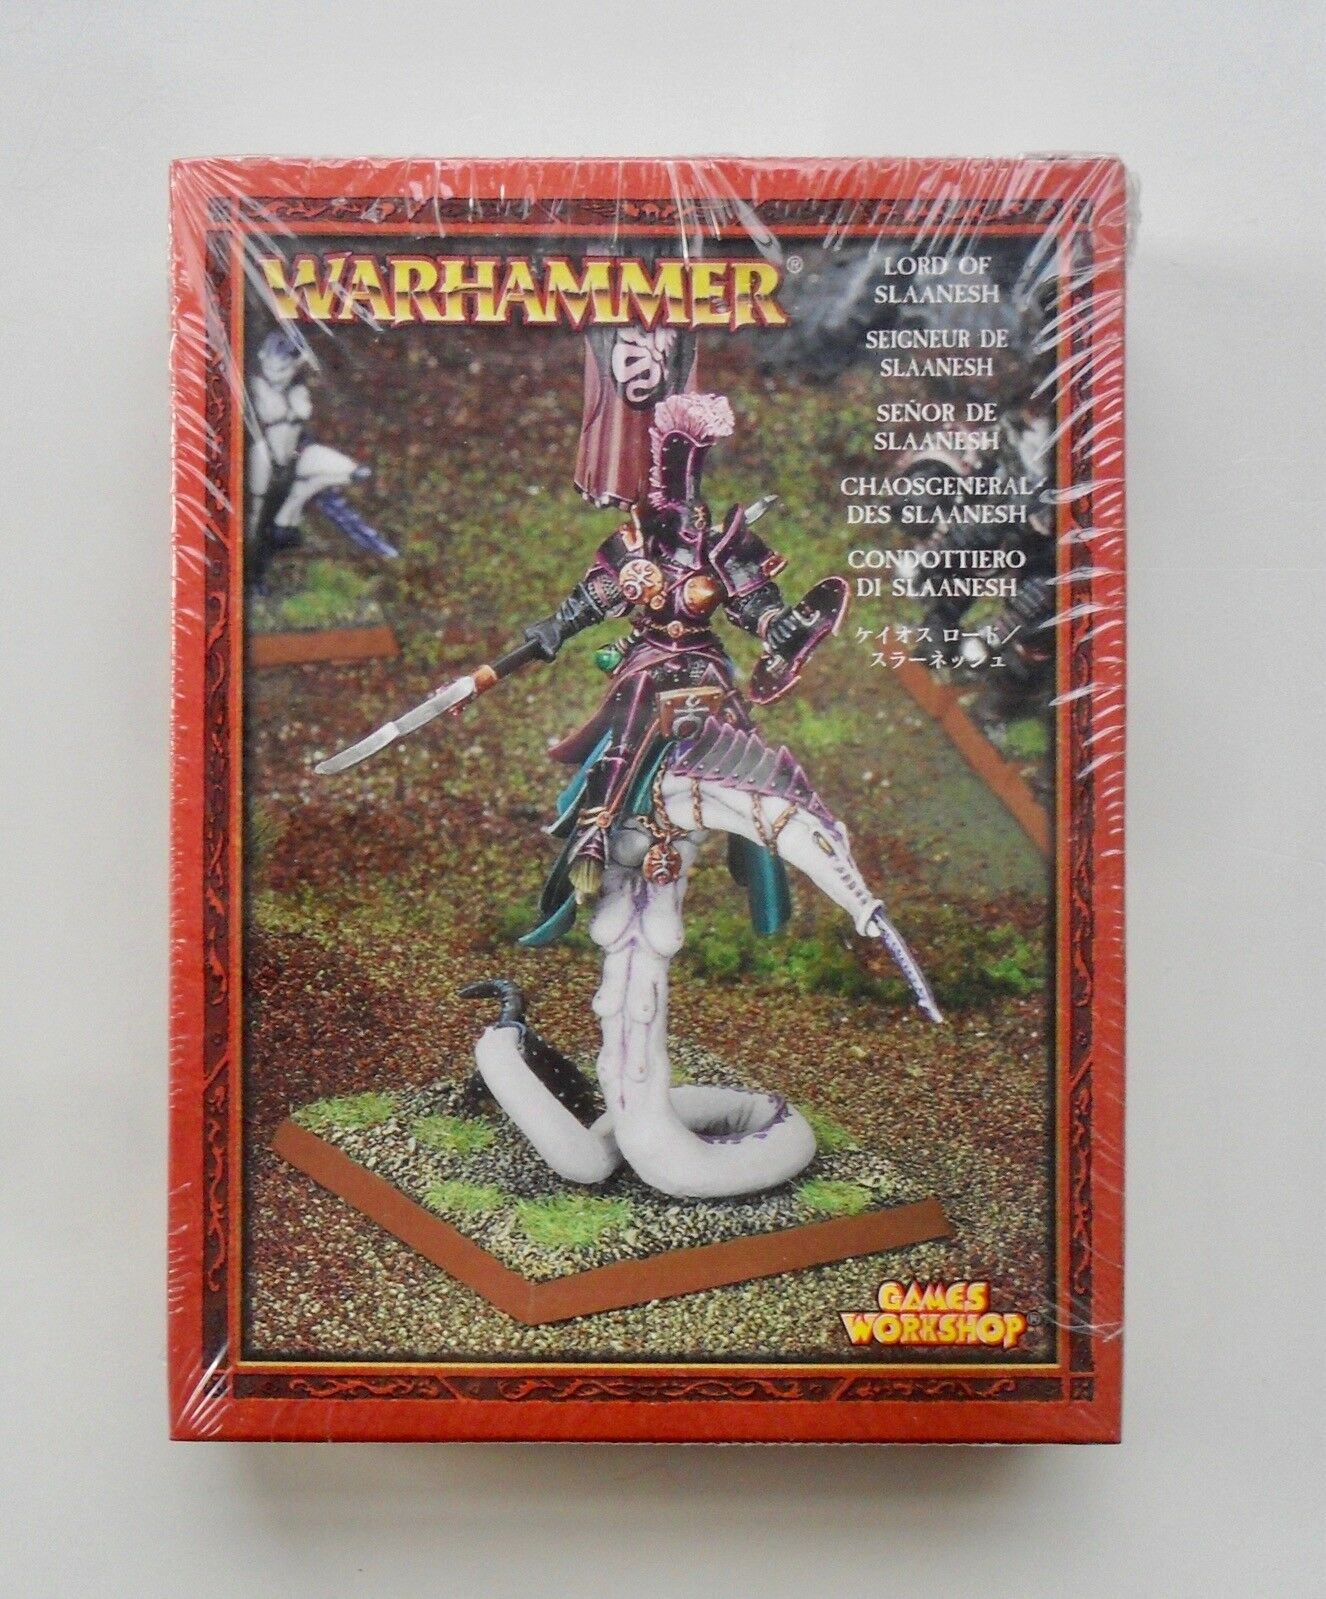 WARHAMMER FANTASY METALLO Chaos Lord on demoniaci Mount di Slaanesh NUOVO CON SCATOLA